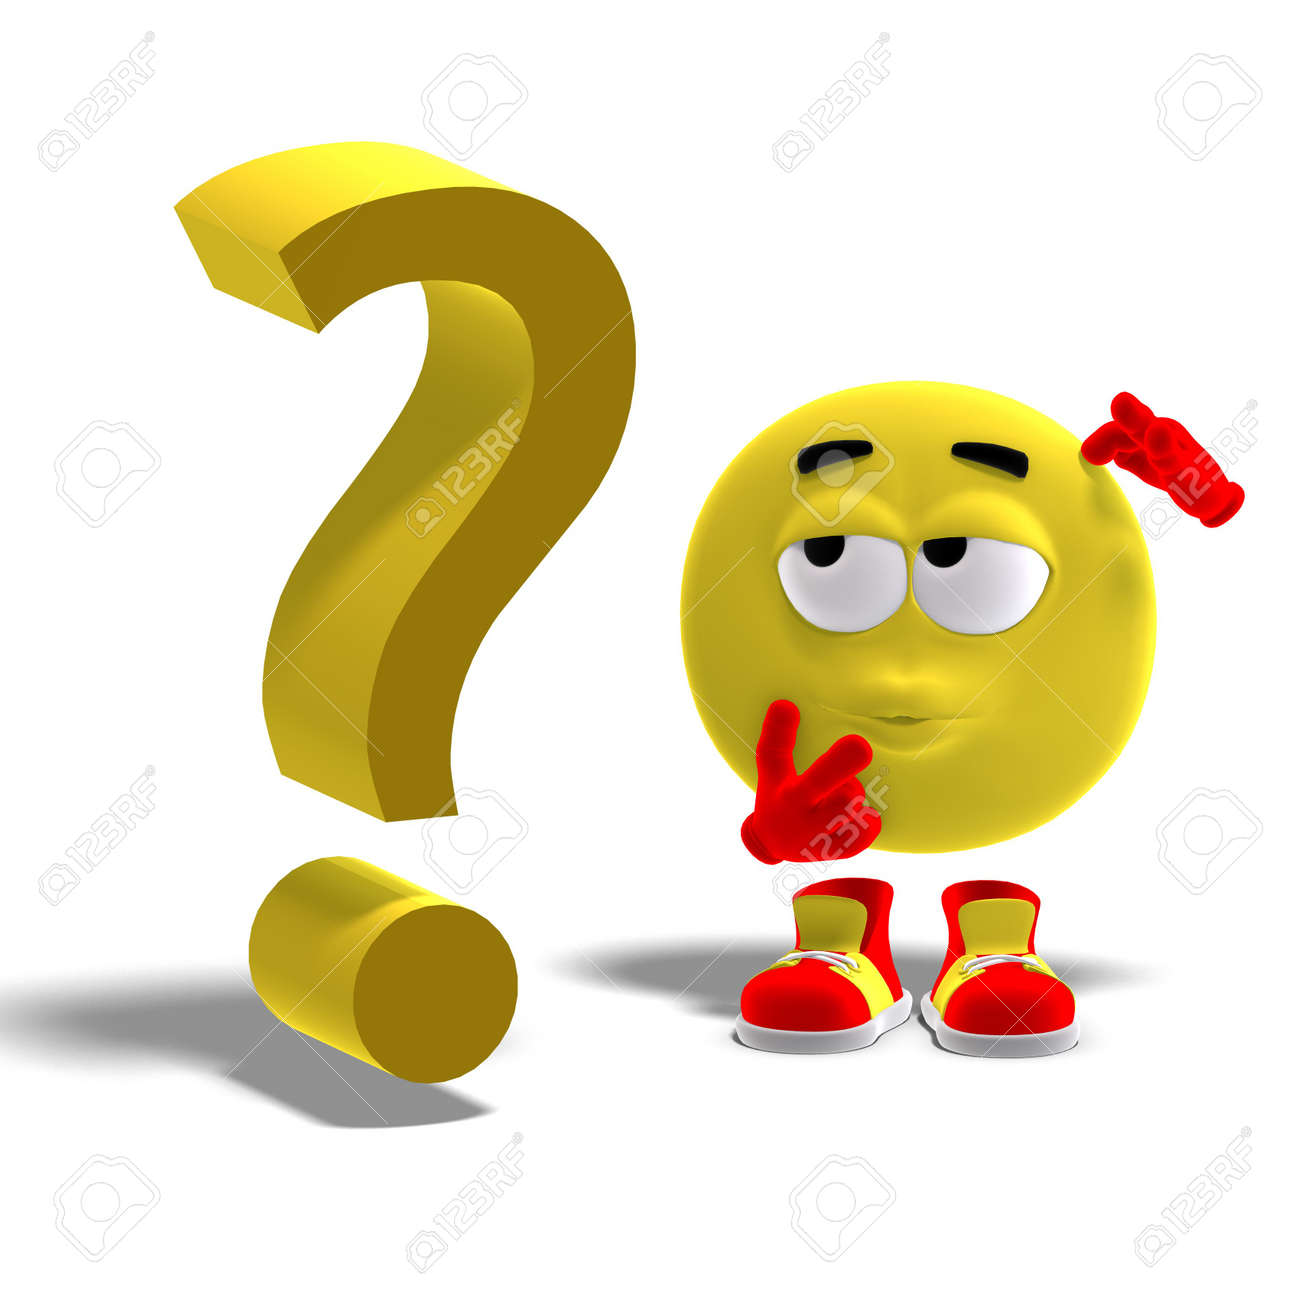 3D rendering of a cool and funny emoticon with a question mark Stock Photo - 5740852